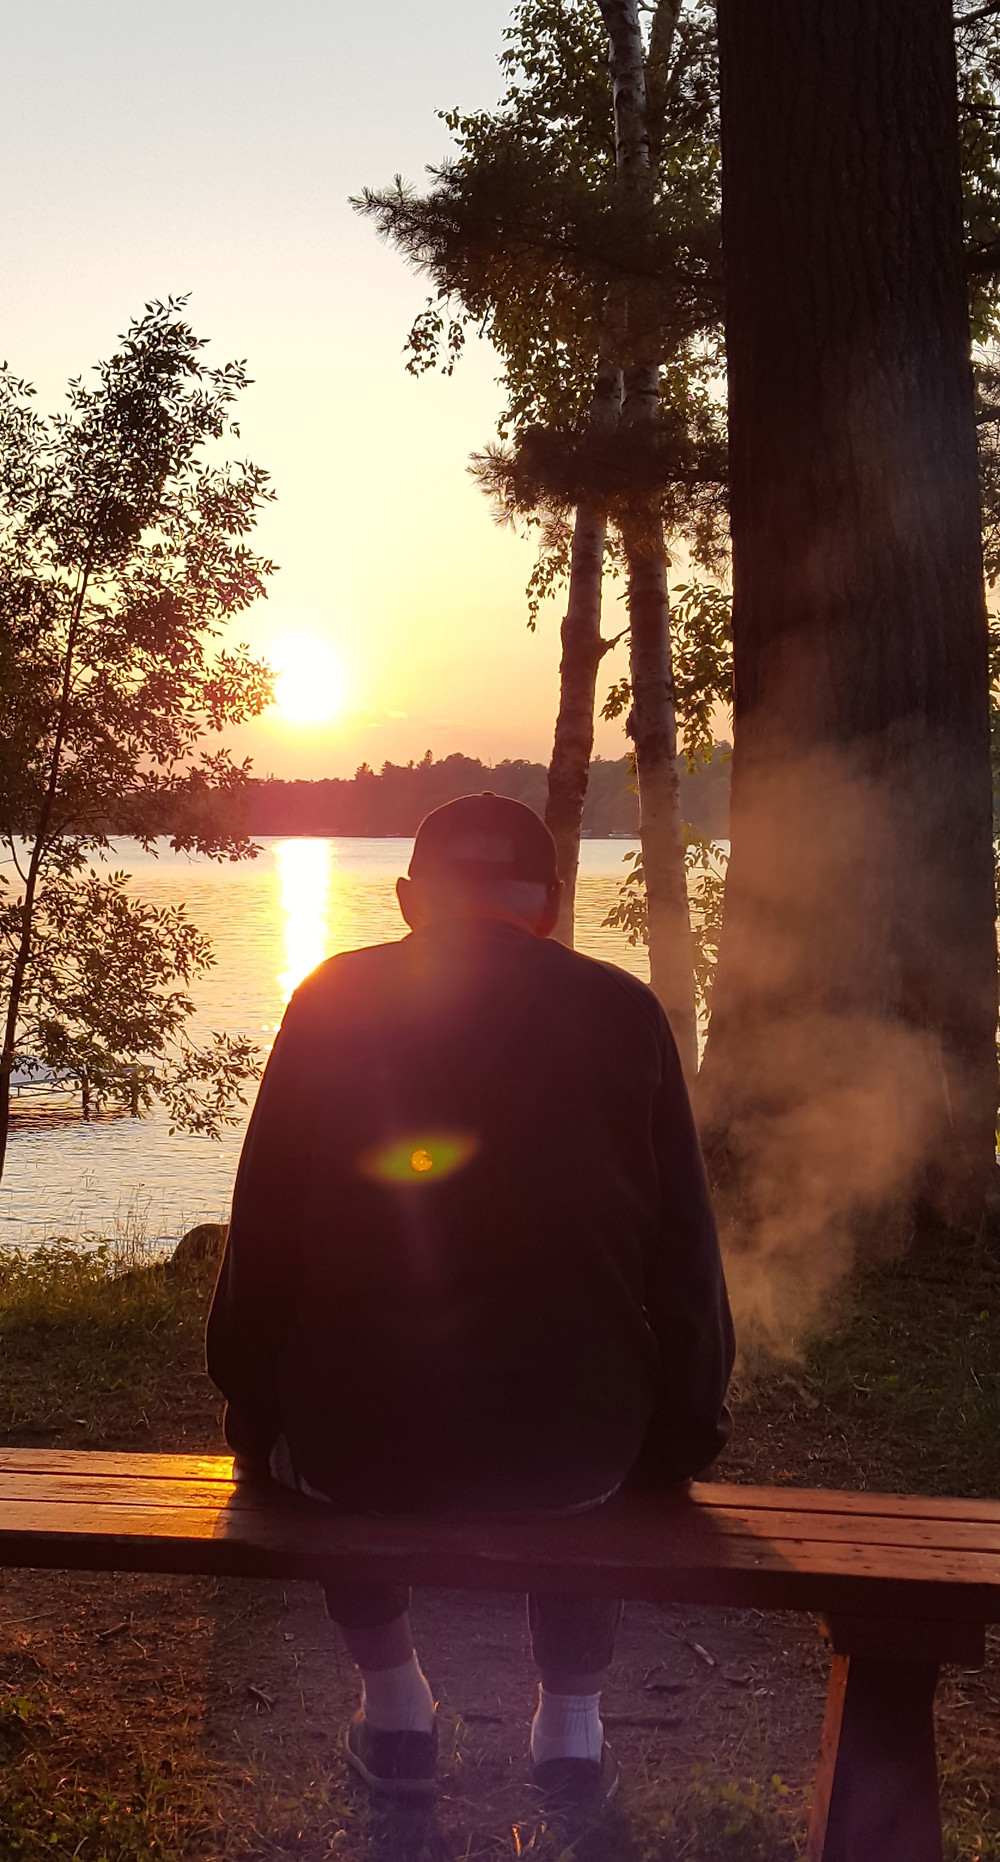 Grampa Bill enjoys a quiet sunset at his cabin.